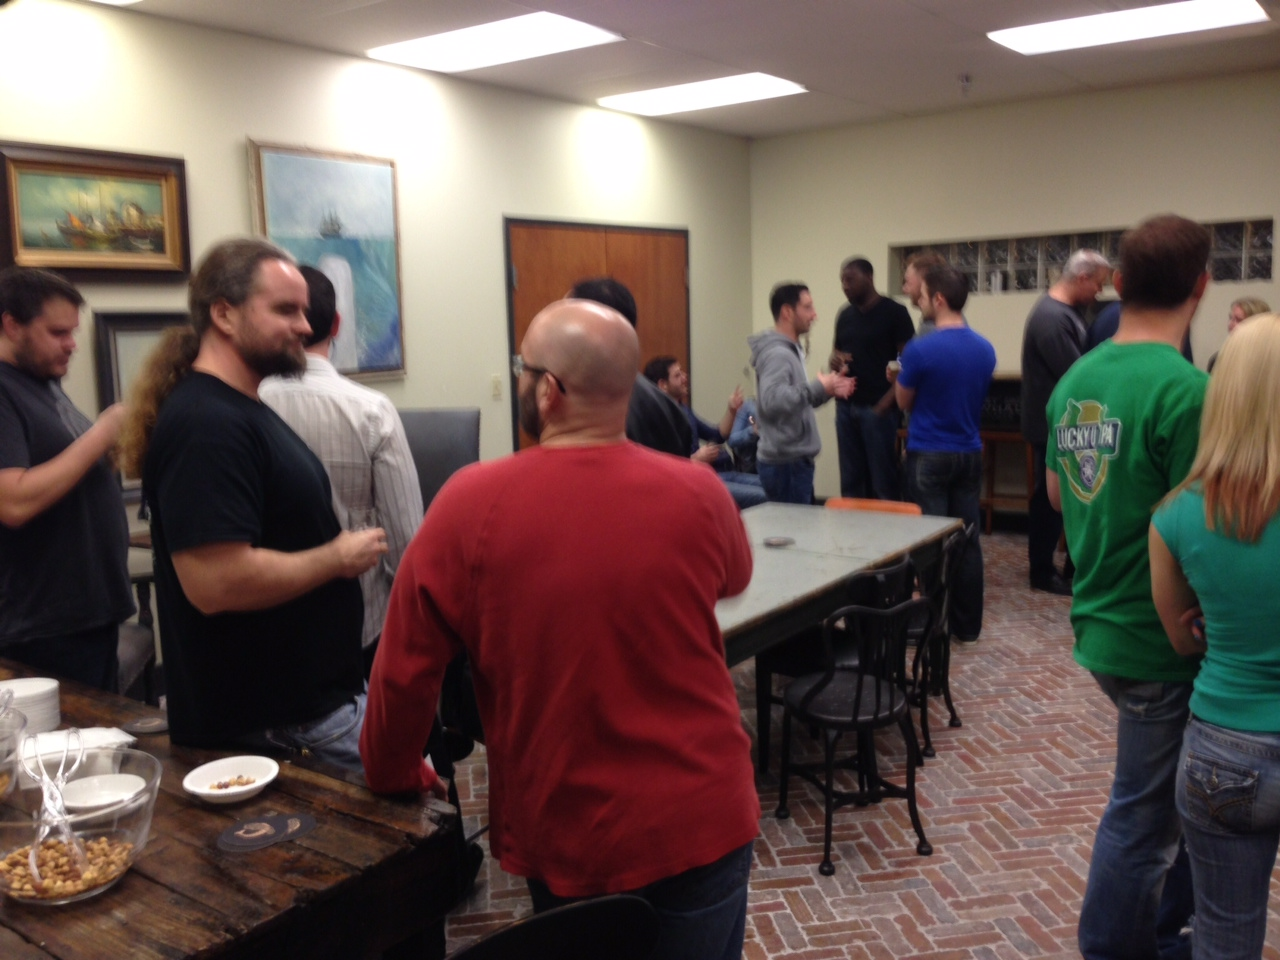 A group of good samaritans helped us drink up our extra beer at the pop-up tasting.